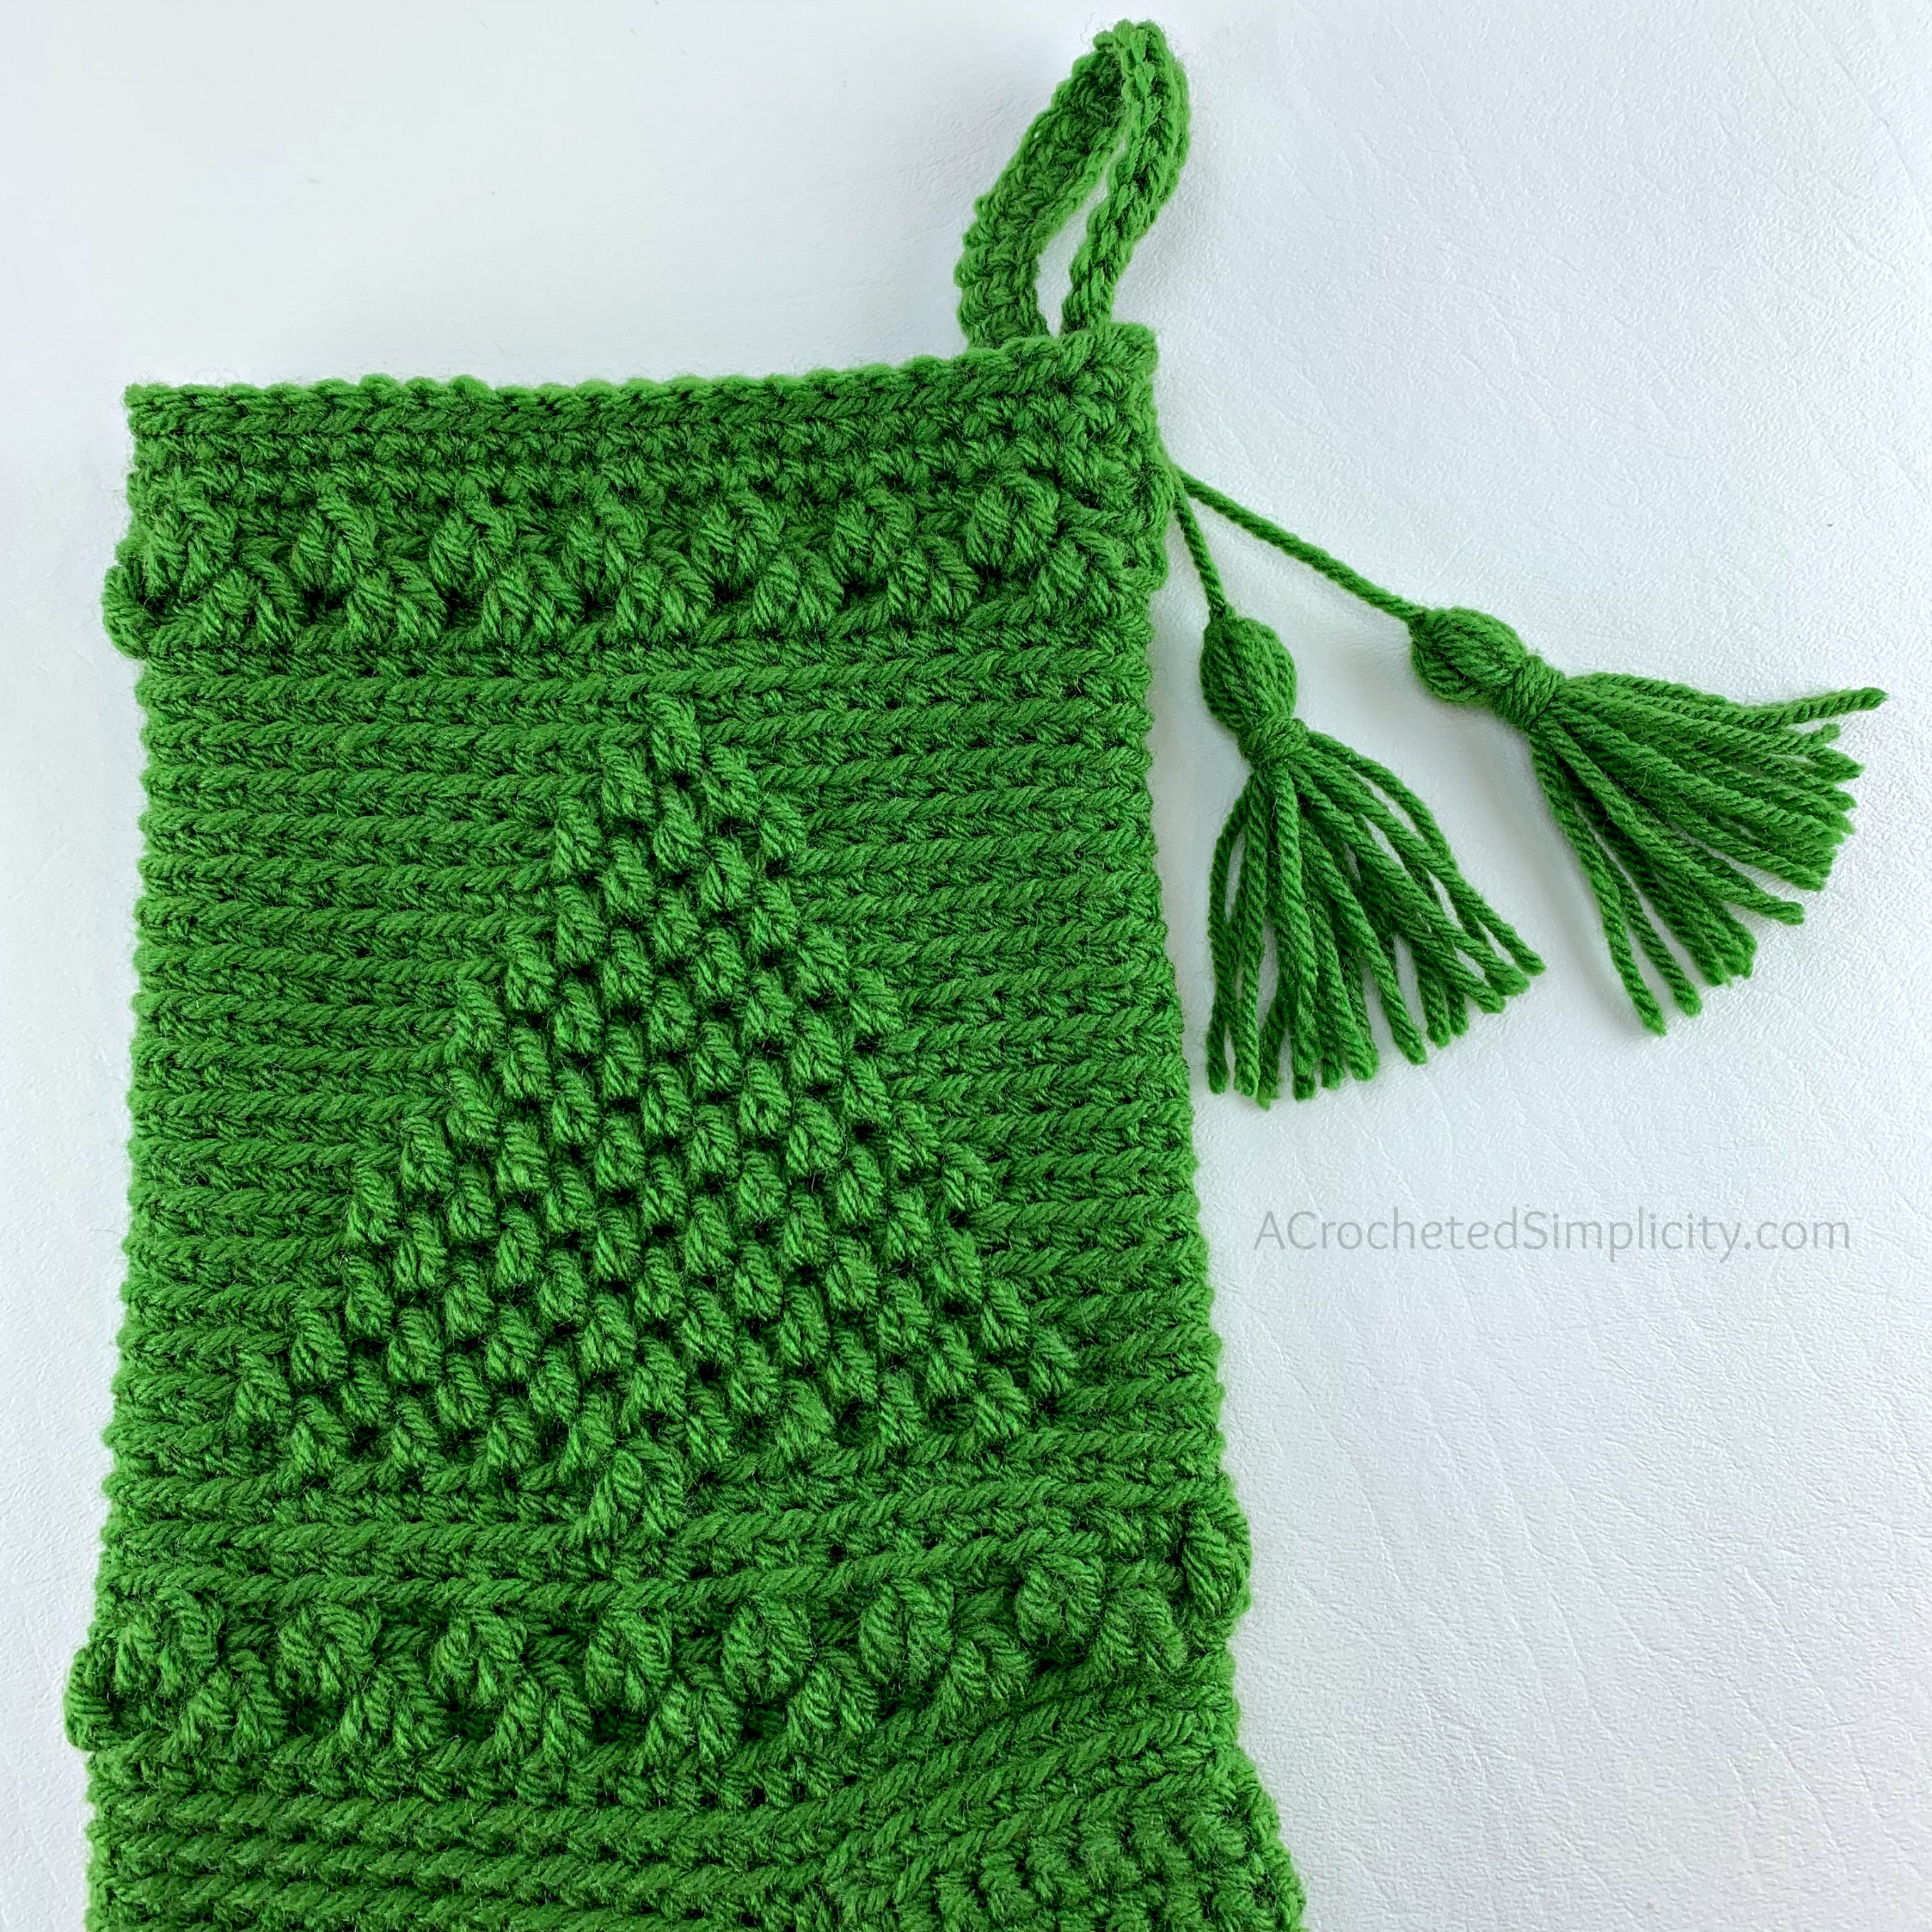 Free Crochet Pattern - O' Christmas Tree Christmas Stocking by A Crocheted Simplicity #freecrochetstockingpattern #freecrochetpattern #crochetchristmas #christmasstockingpattern #crochet #handmadestocking